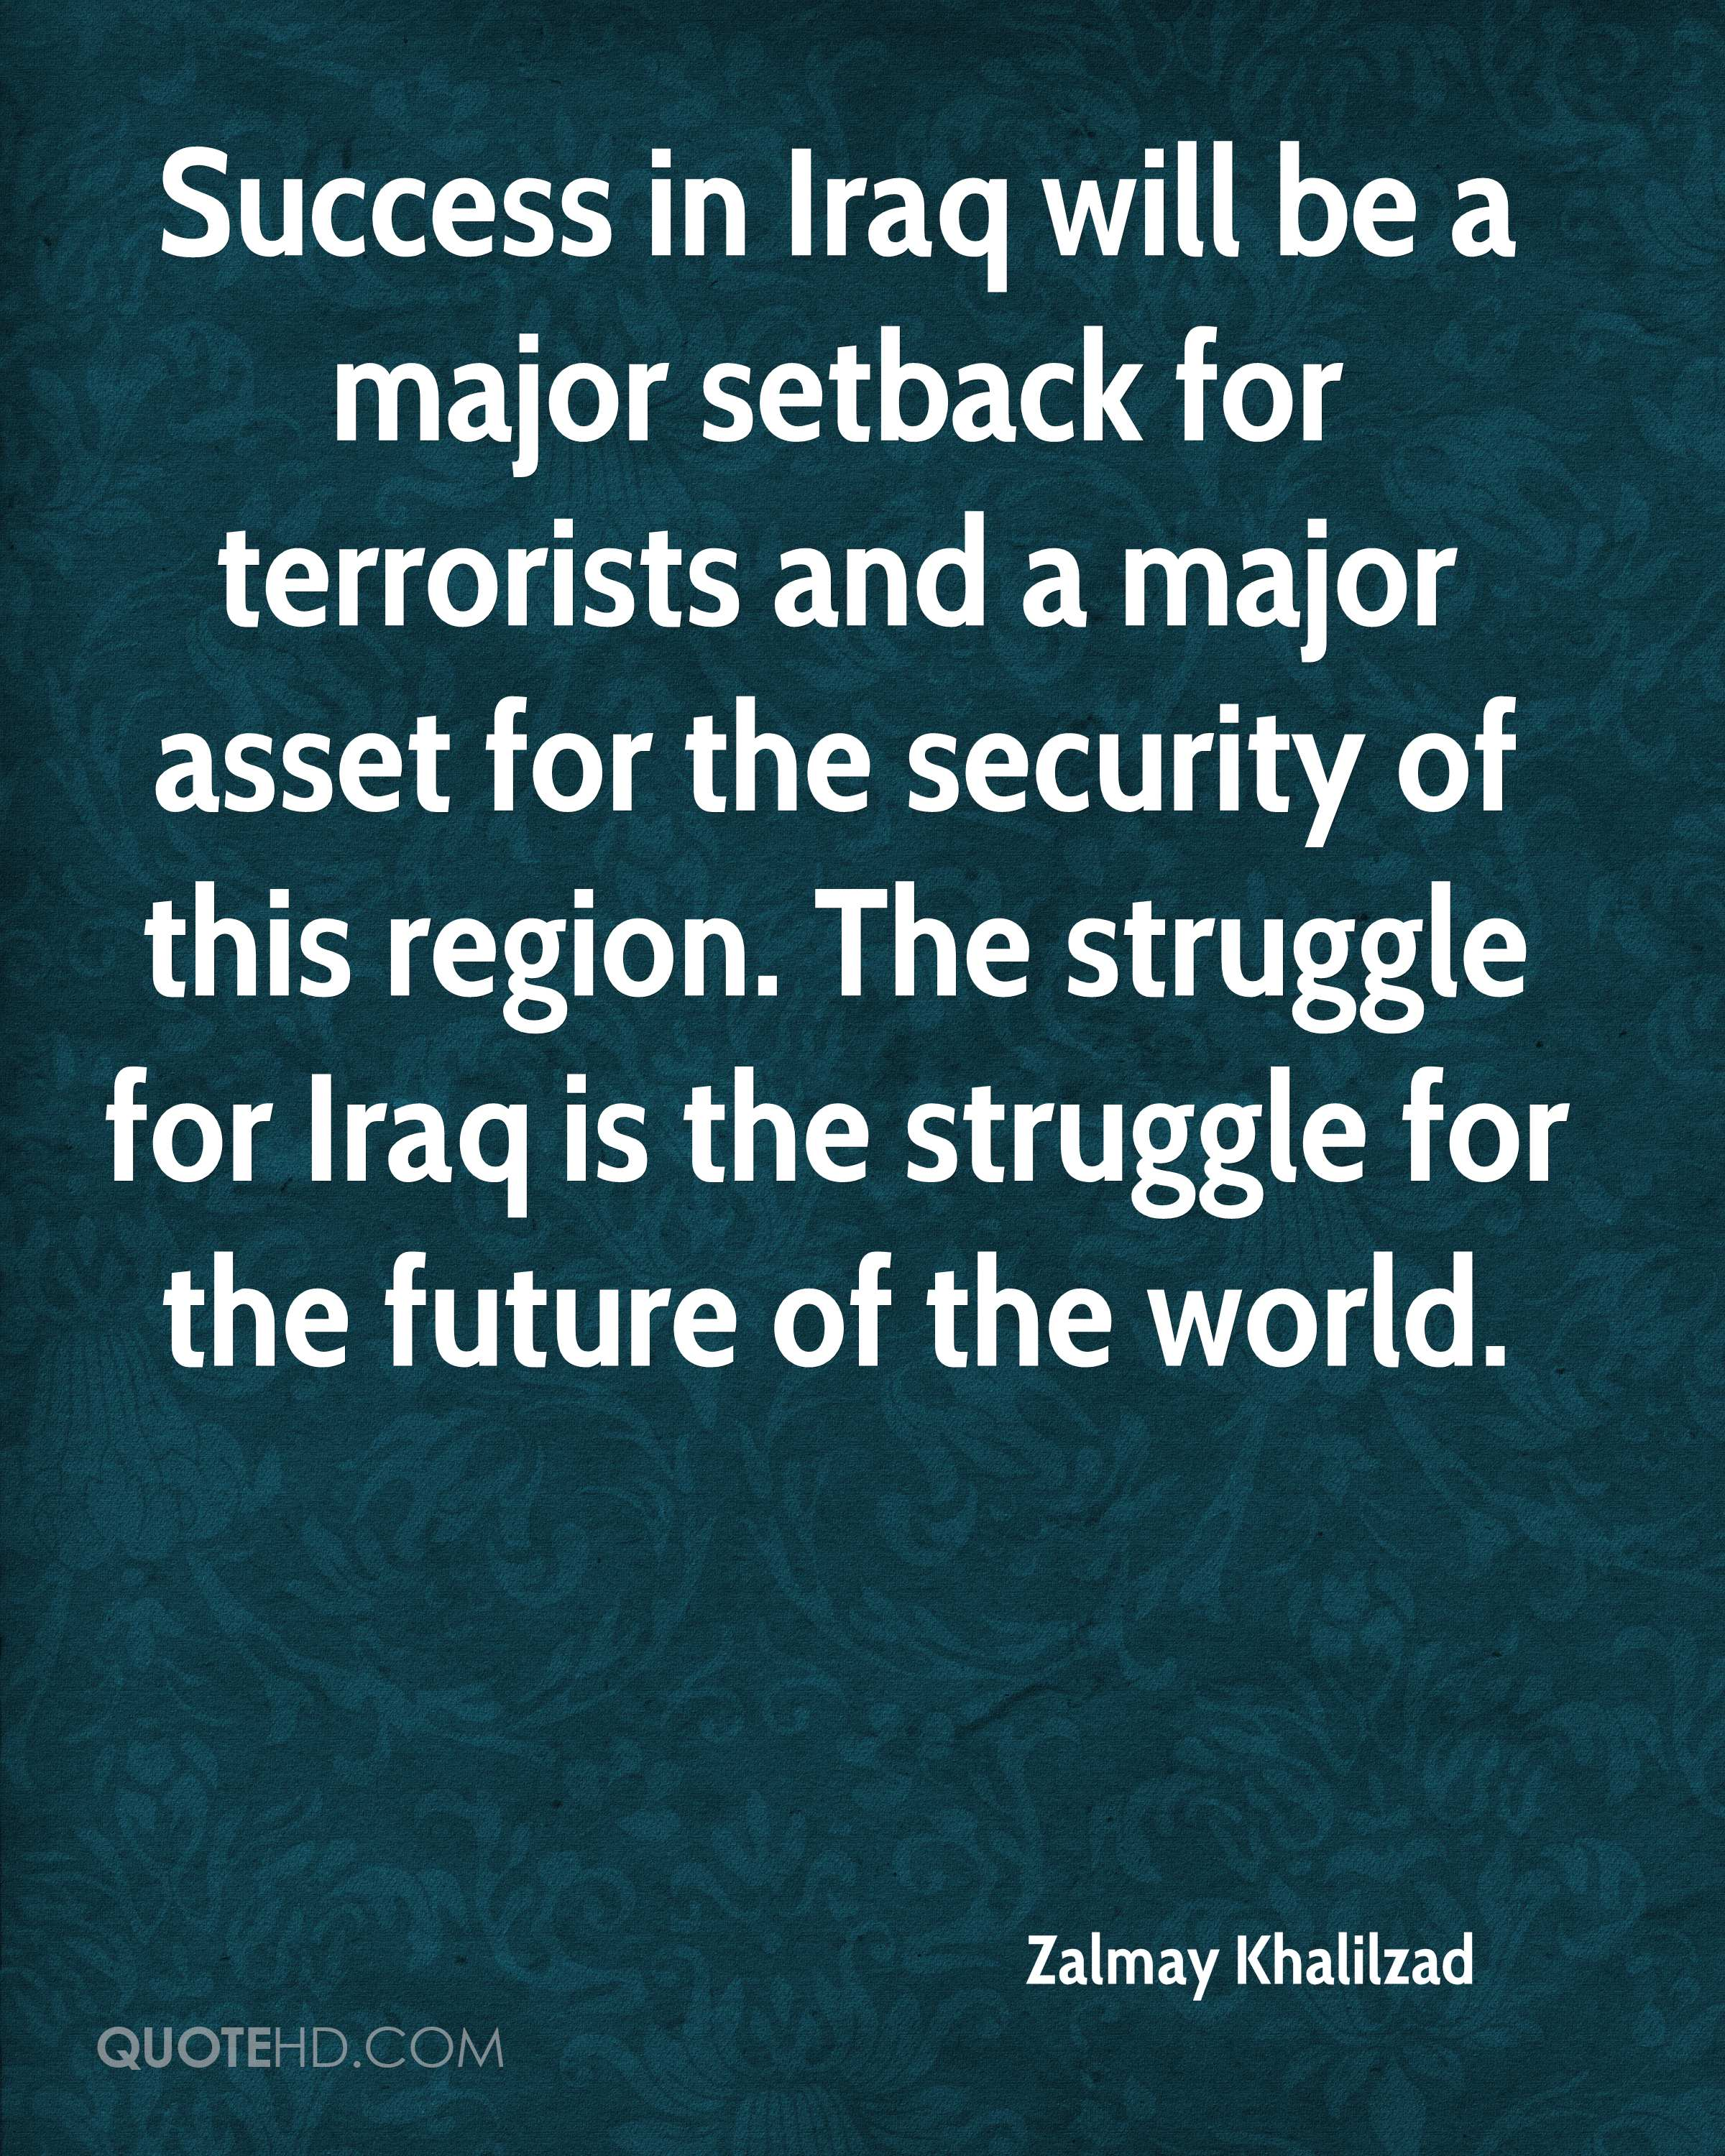 Success in Iraq will be a major setback for terrorists and a major asset for the security of this region. The struggle for Iraq is the struggle for the future of the world.